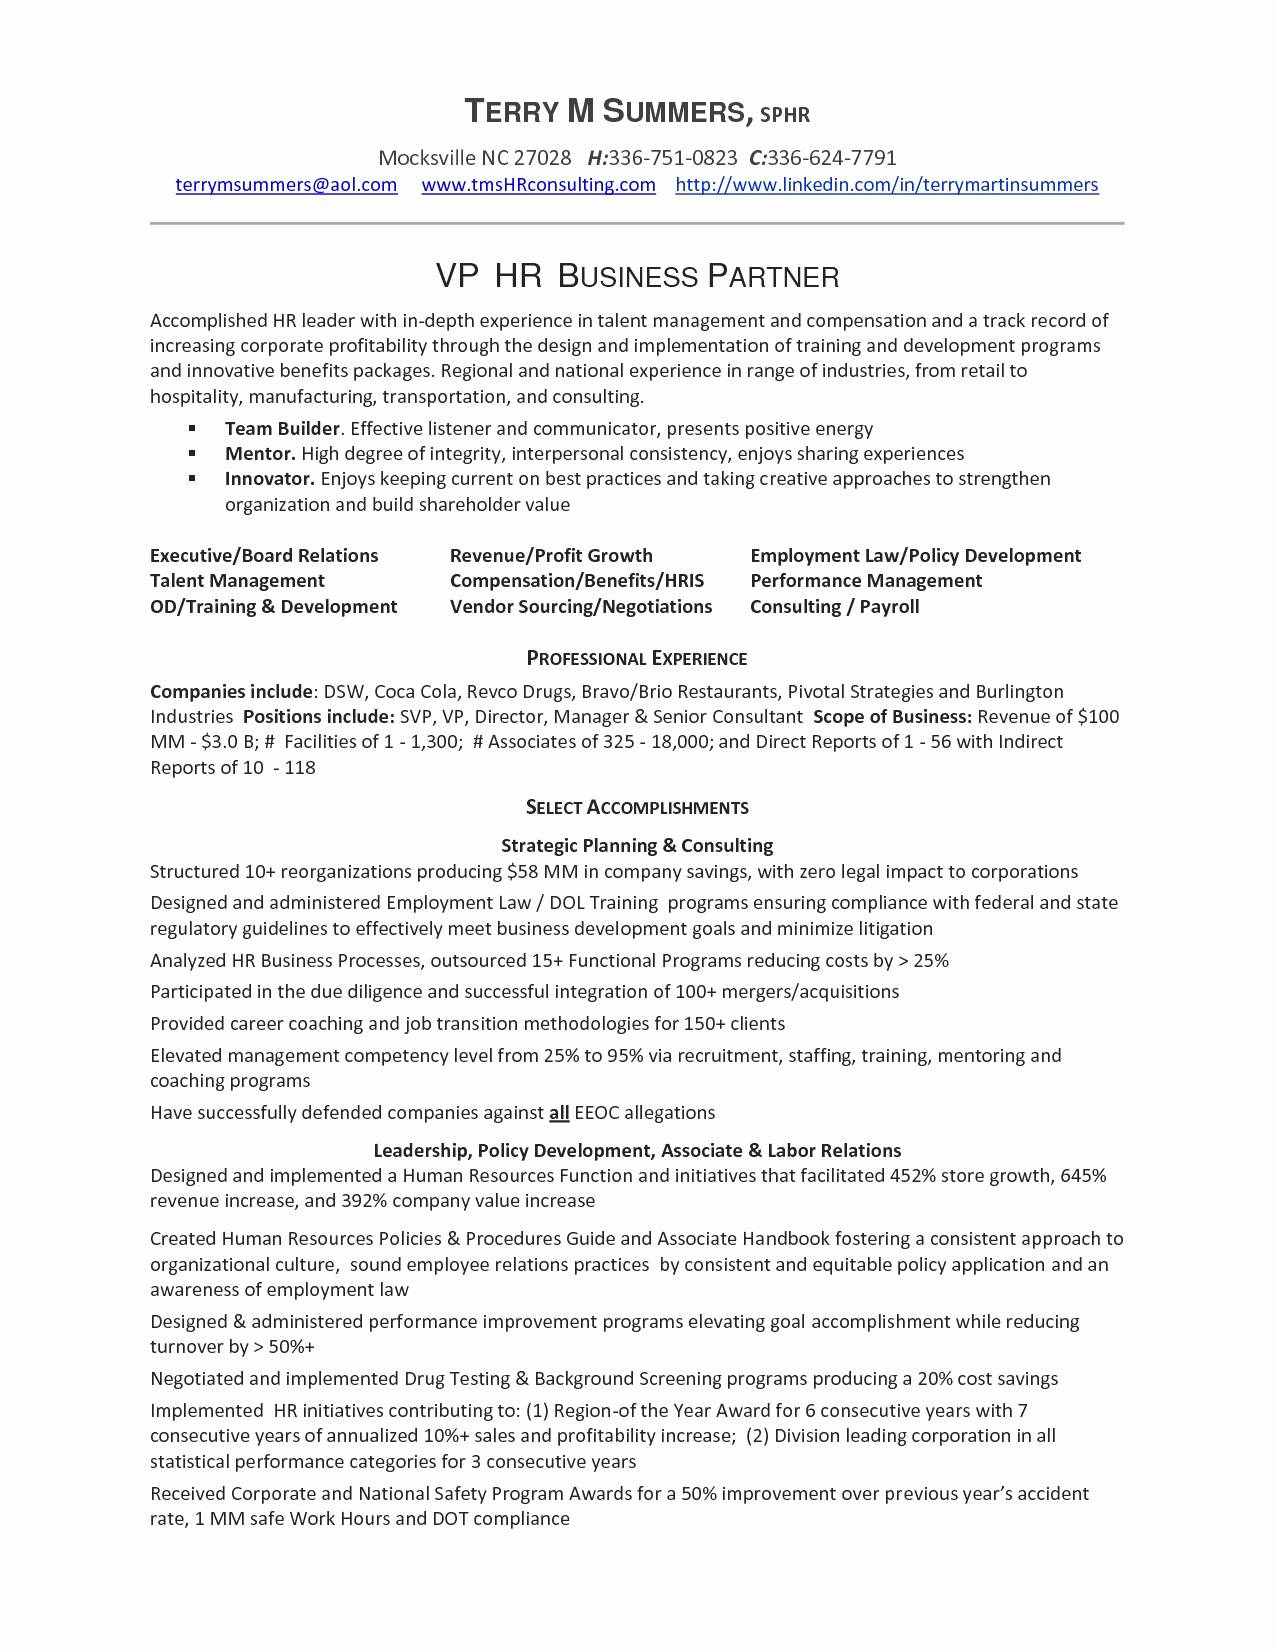 Performance Improvement Plan Letter Template - Performance Management Action Plan Template New Employee Performance